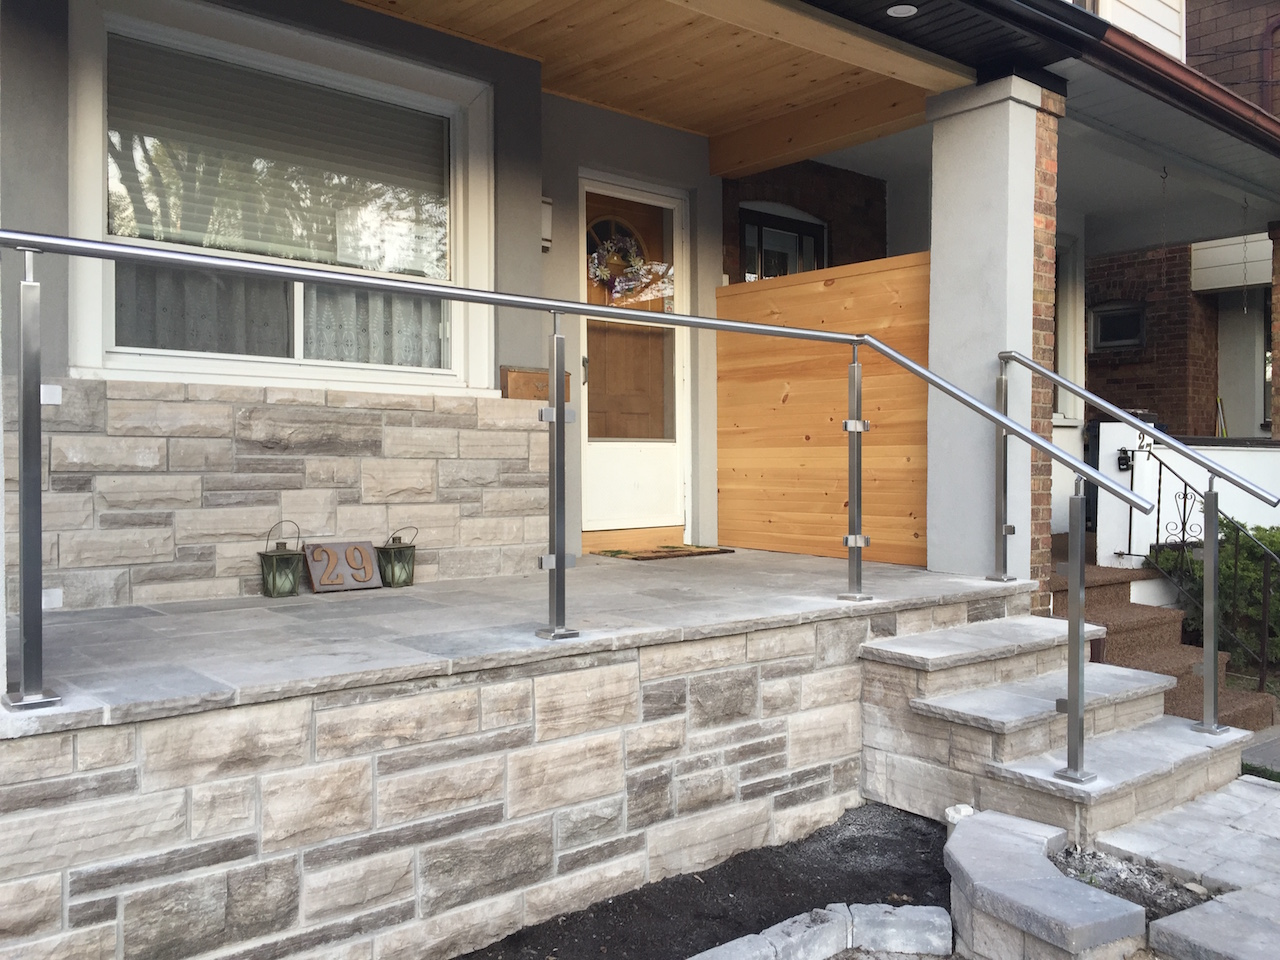 Gallery Exterior Glass Stainless Steel Railings